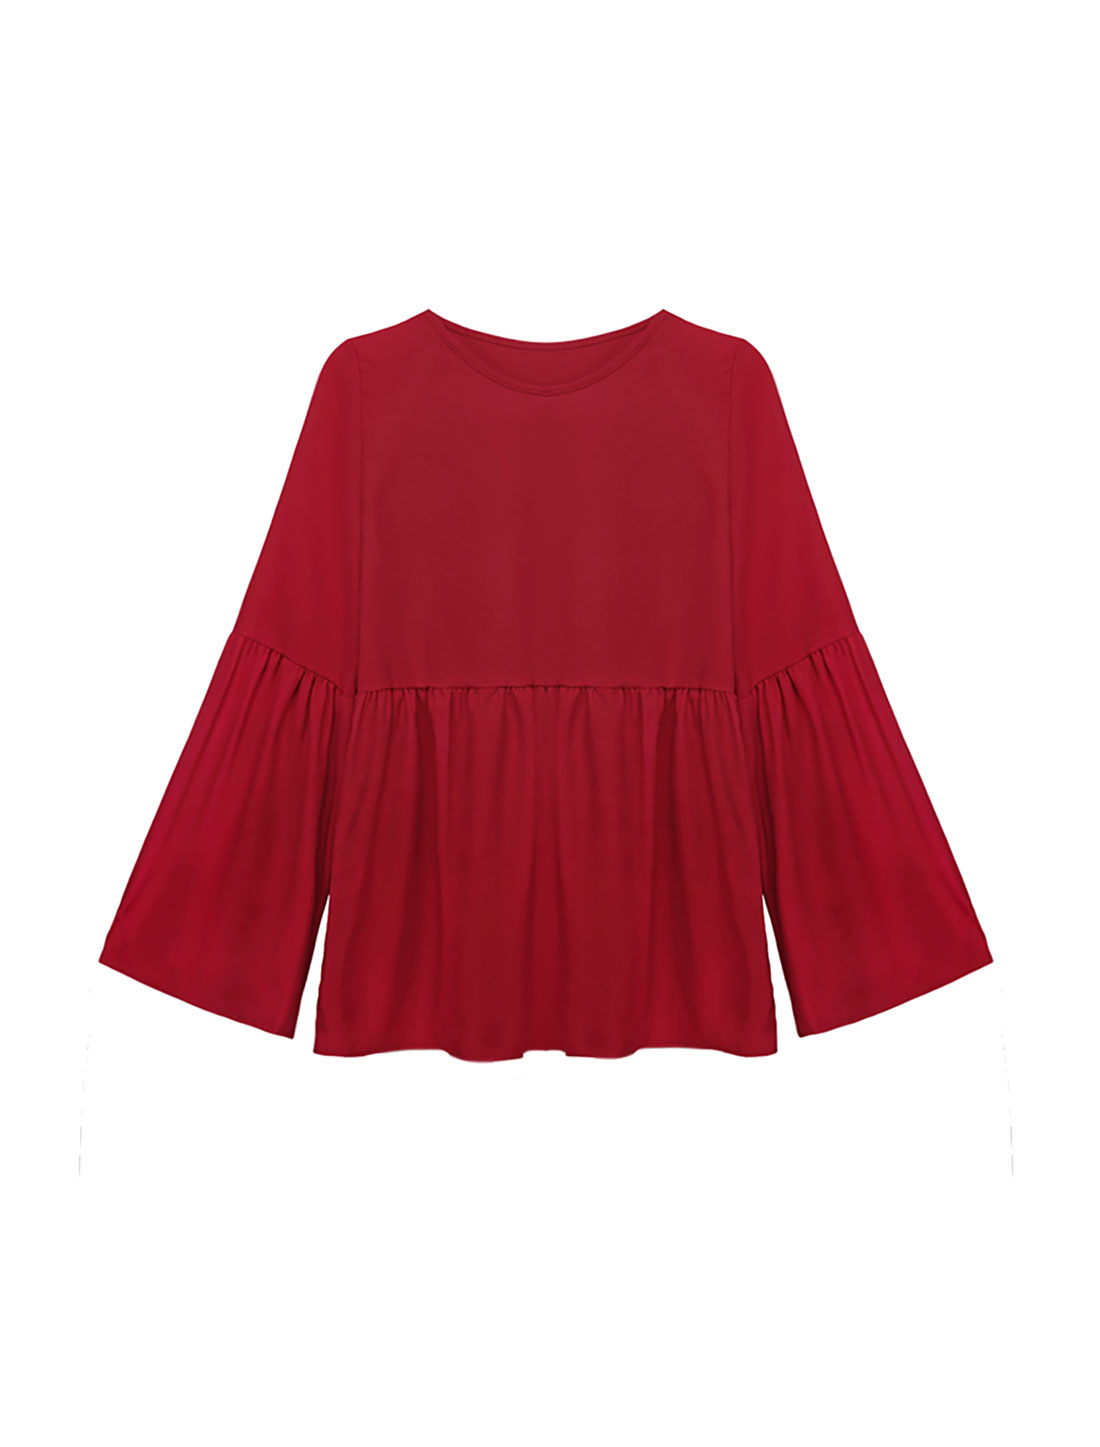 Women Round Neck Bell Sleeves Flouncing Design Tunic Blouse Red S